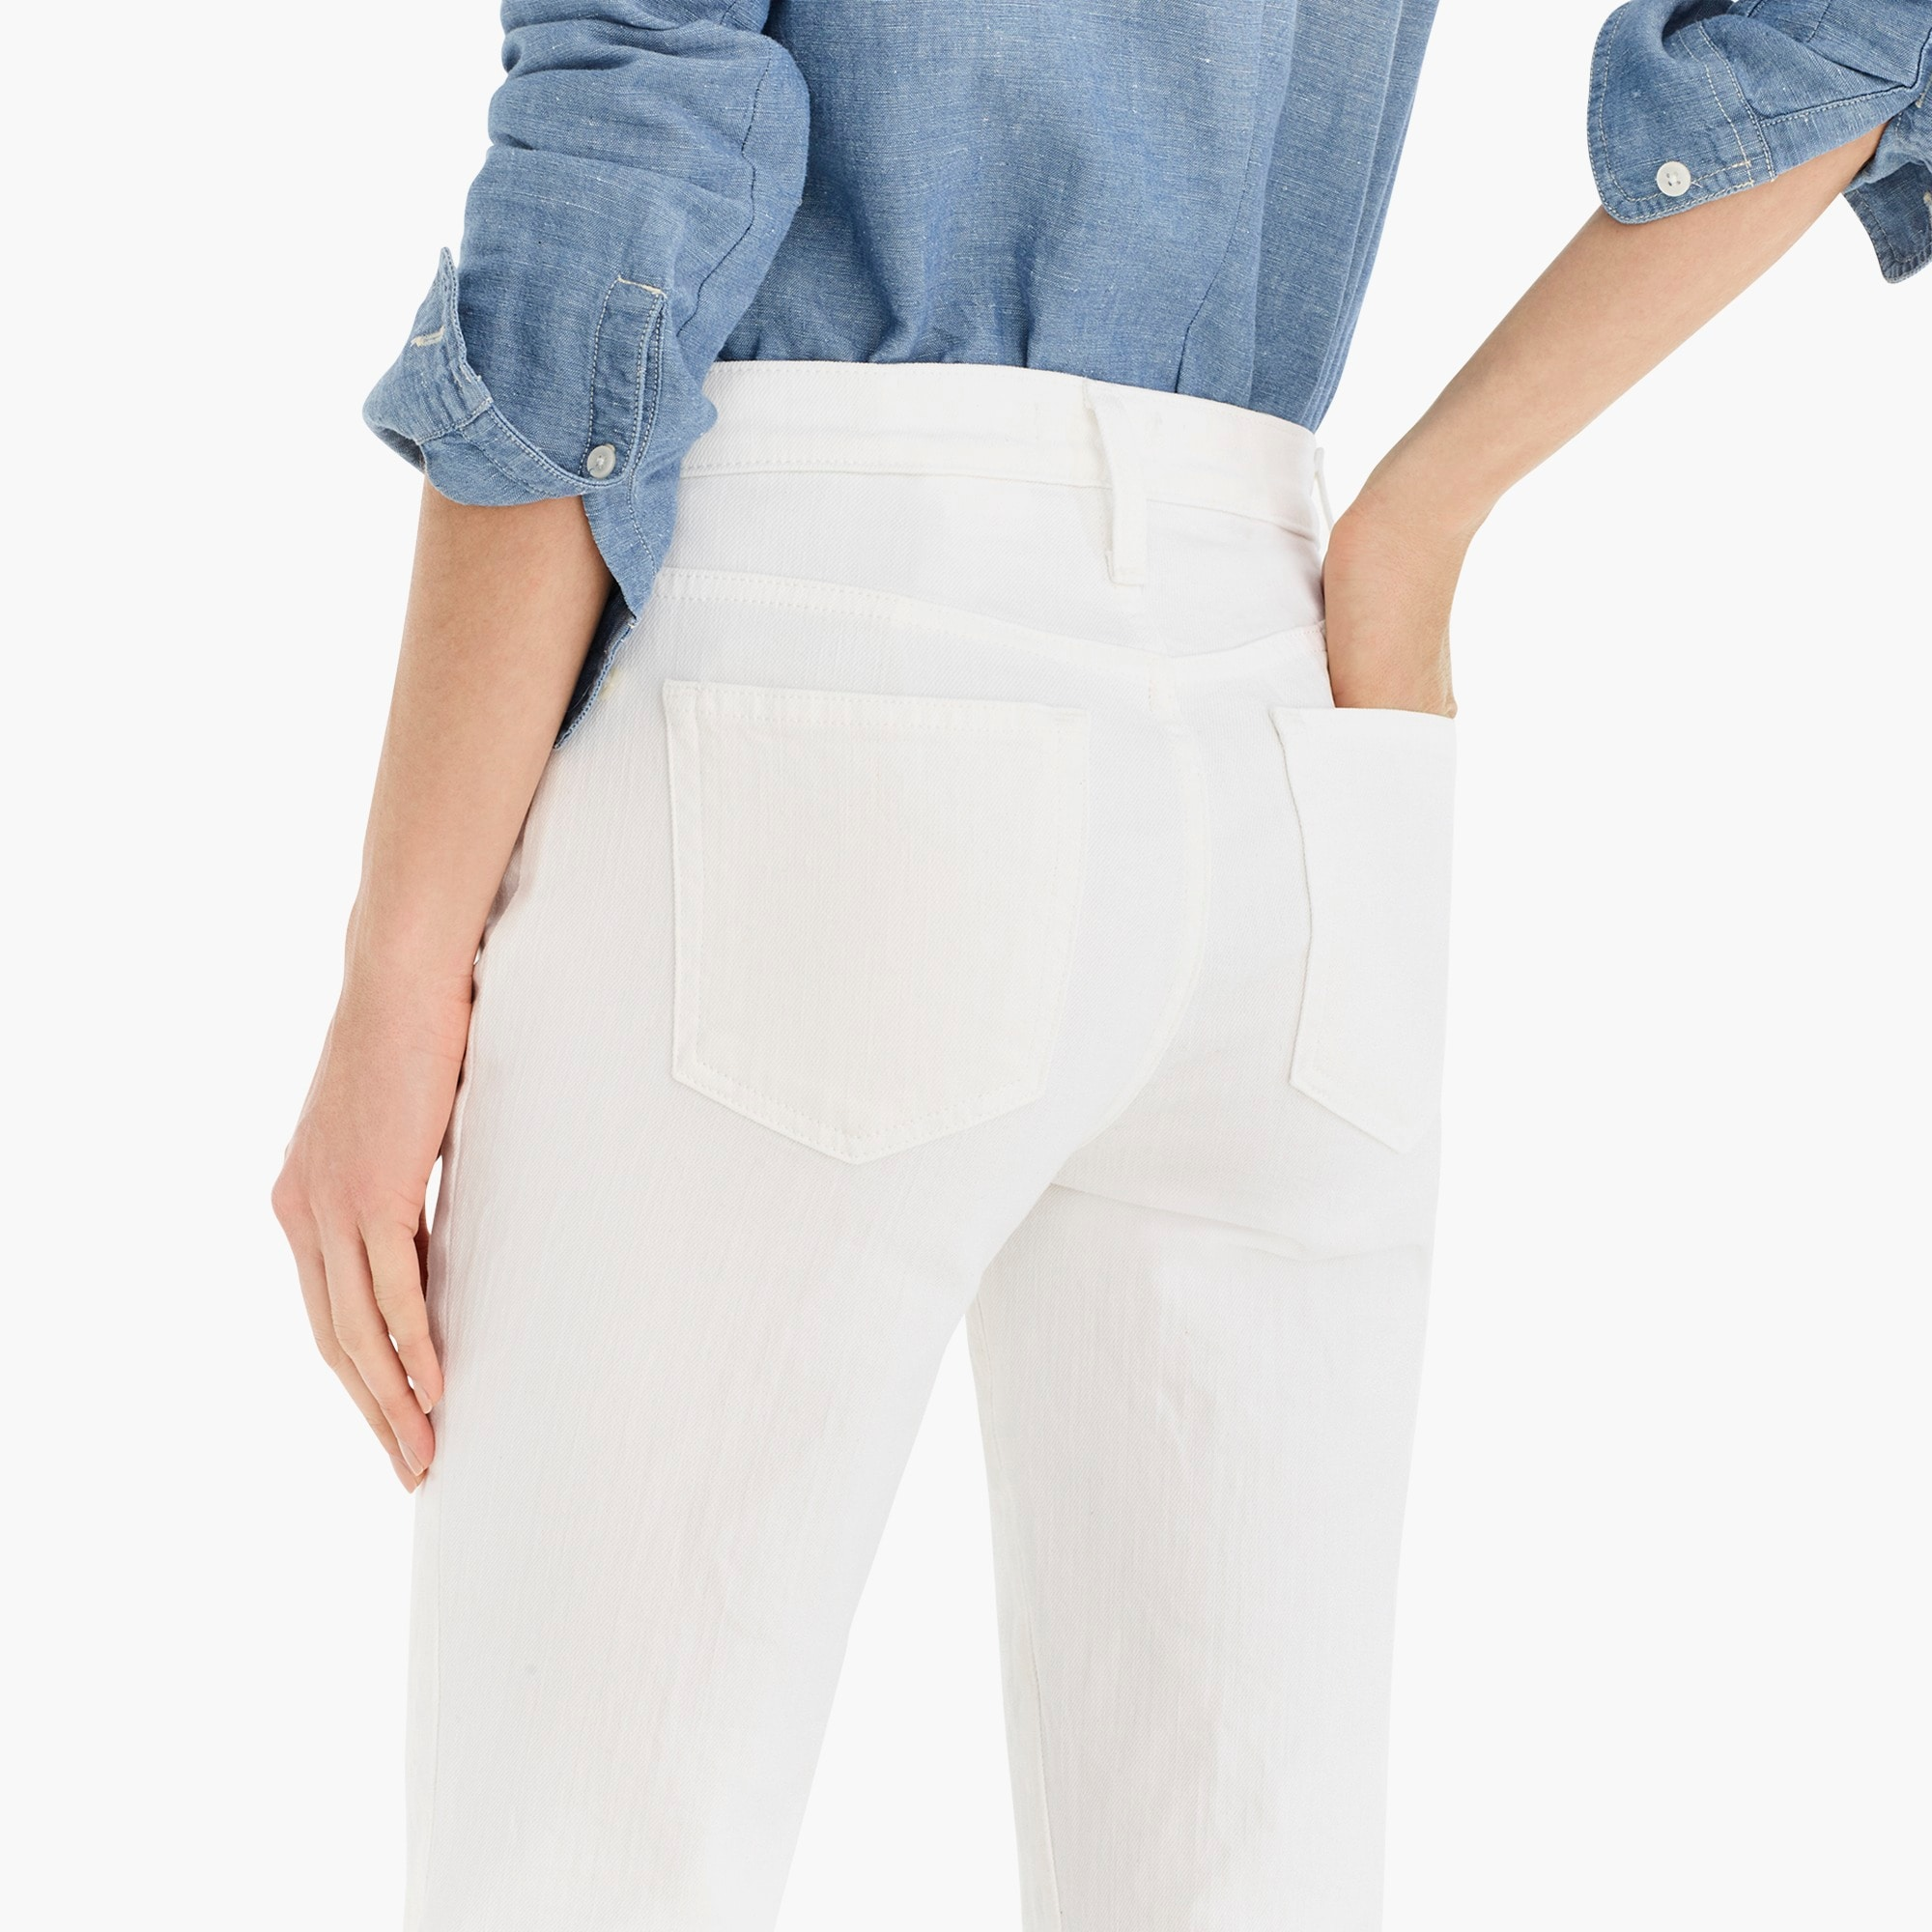 Image 3 for Petite slim broken-in boyfriend jean in white